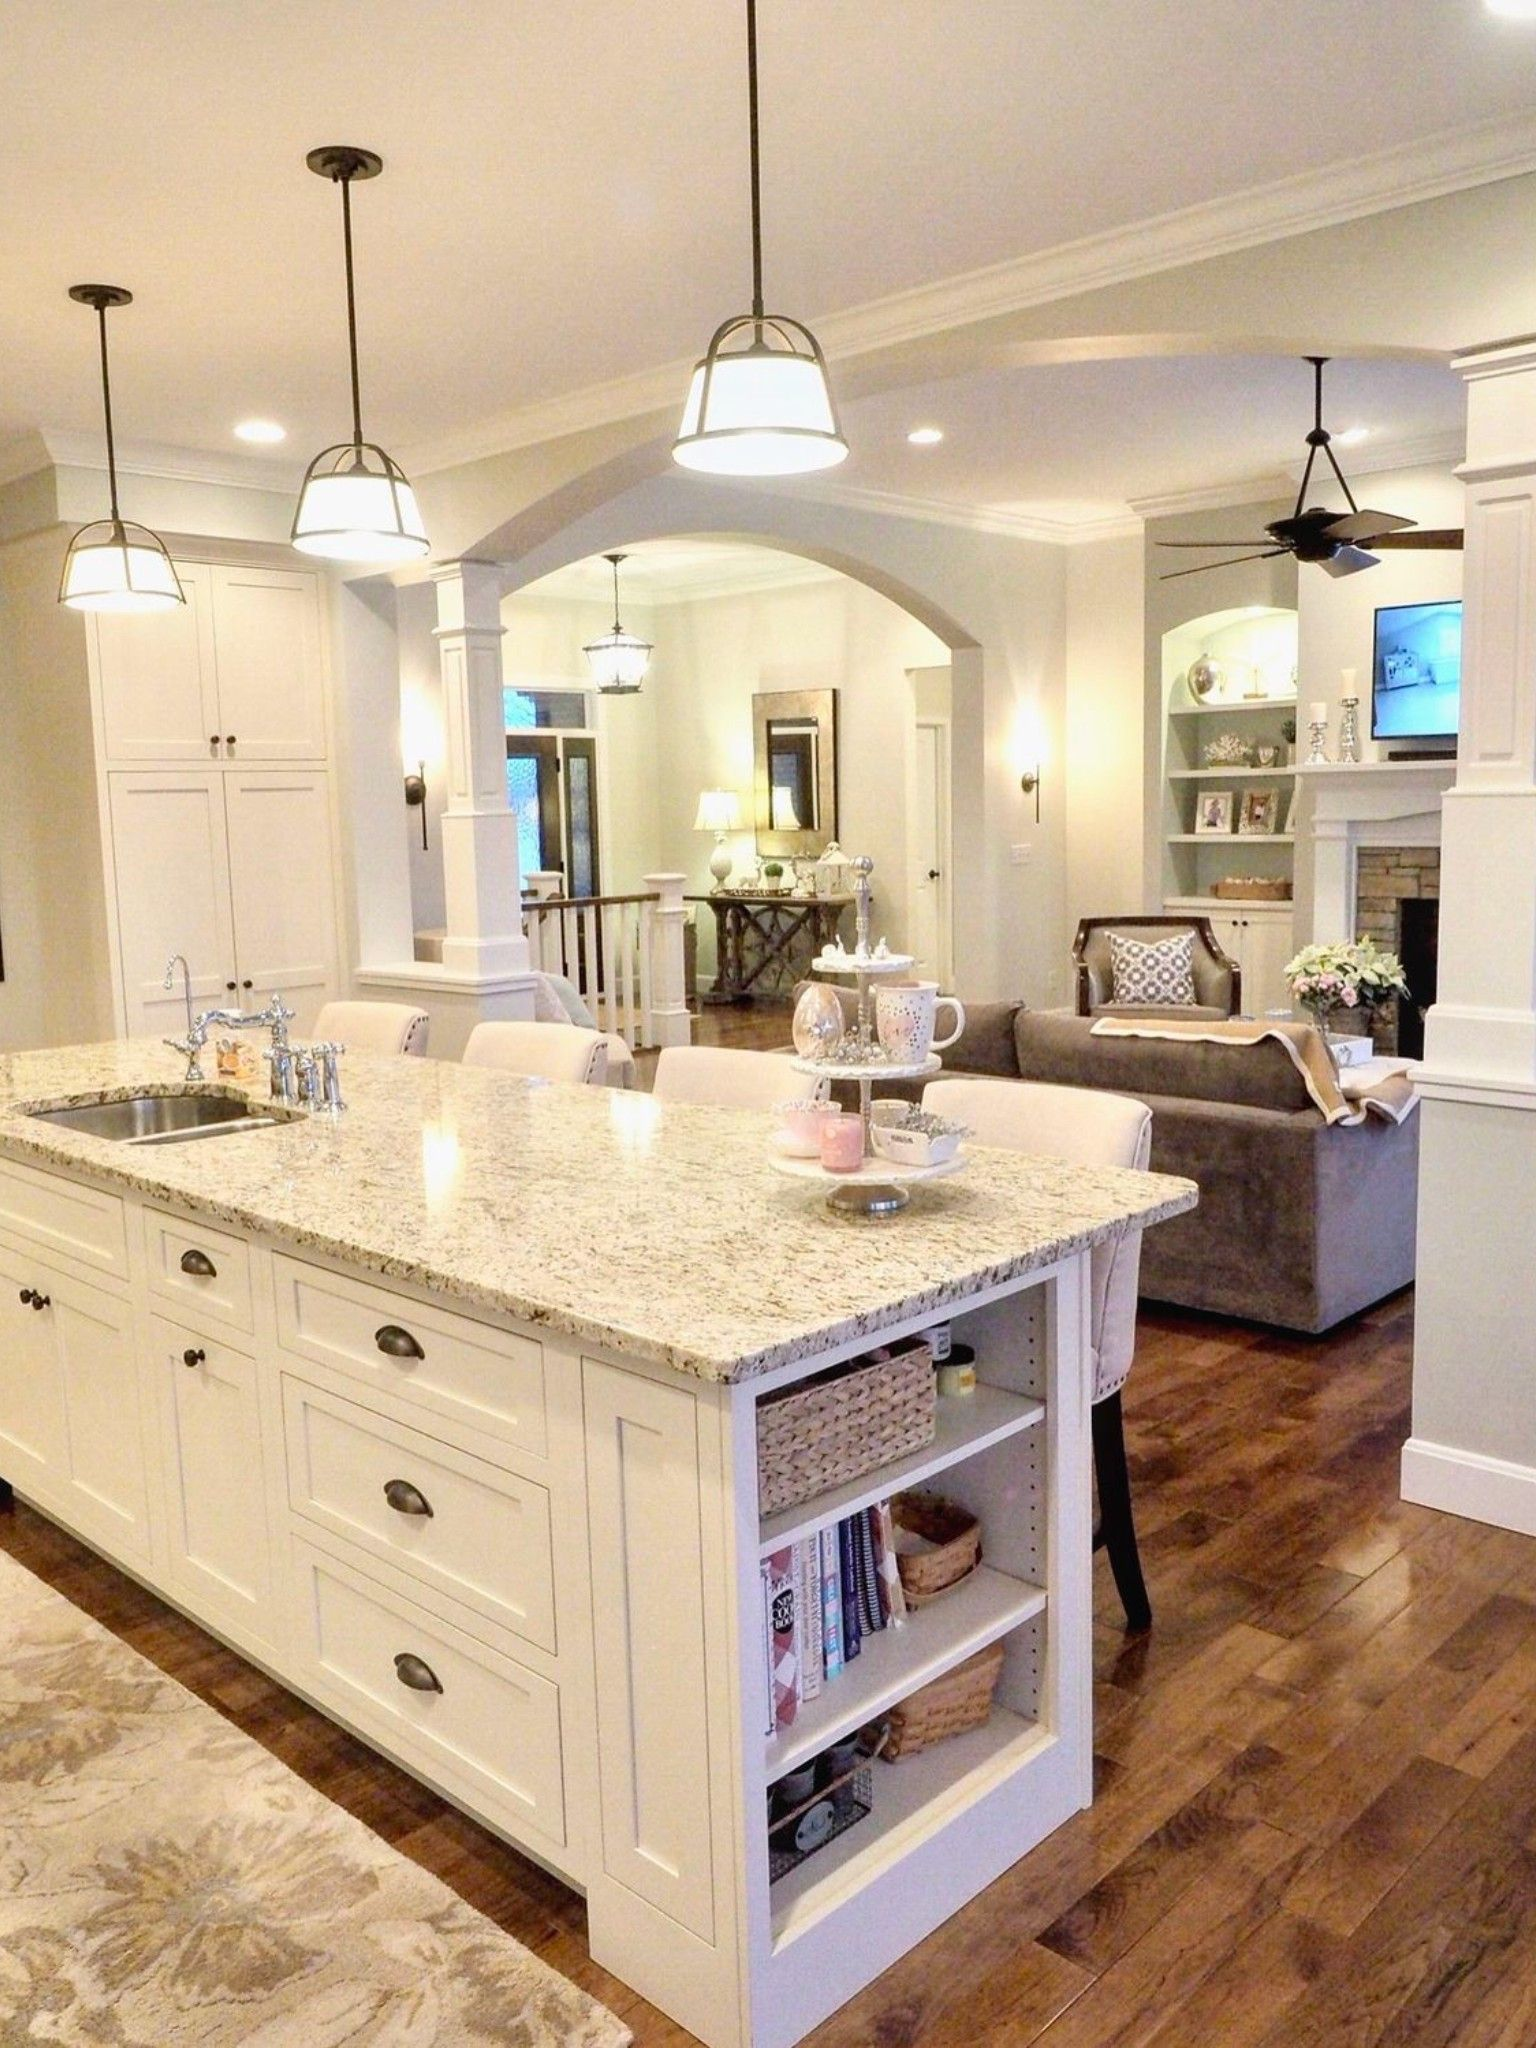 Elegant White Kitchen Cabinets With Natural Wood Floor Kitchen